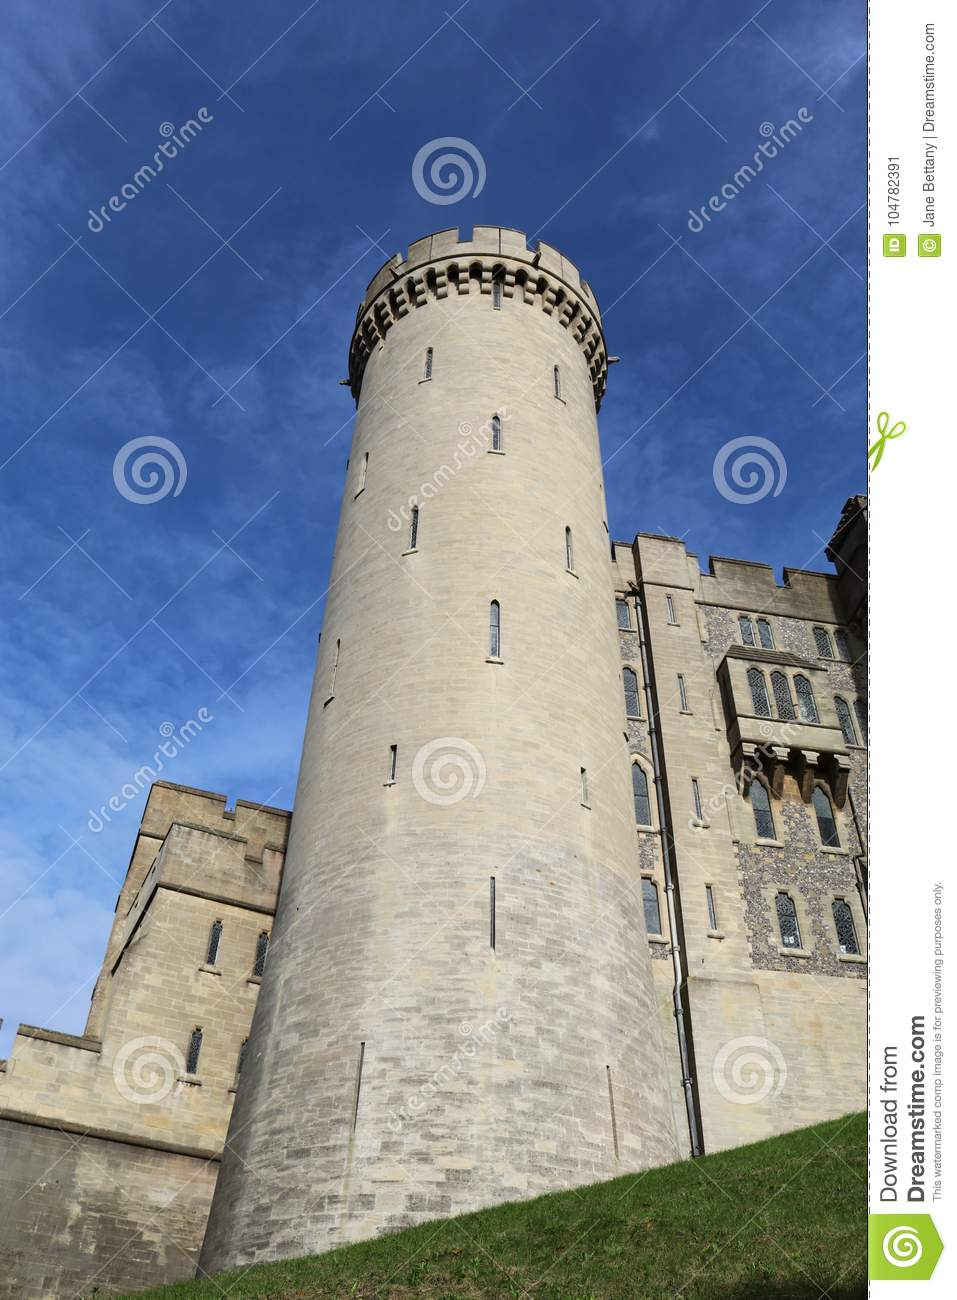 Tower at Arundel Castle Sussex UK